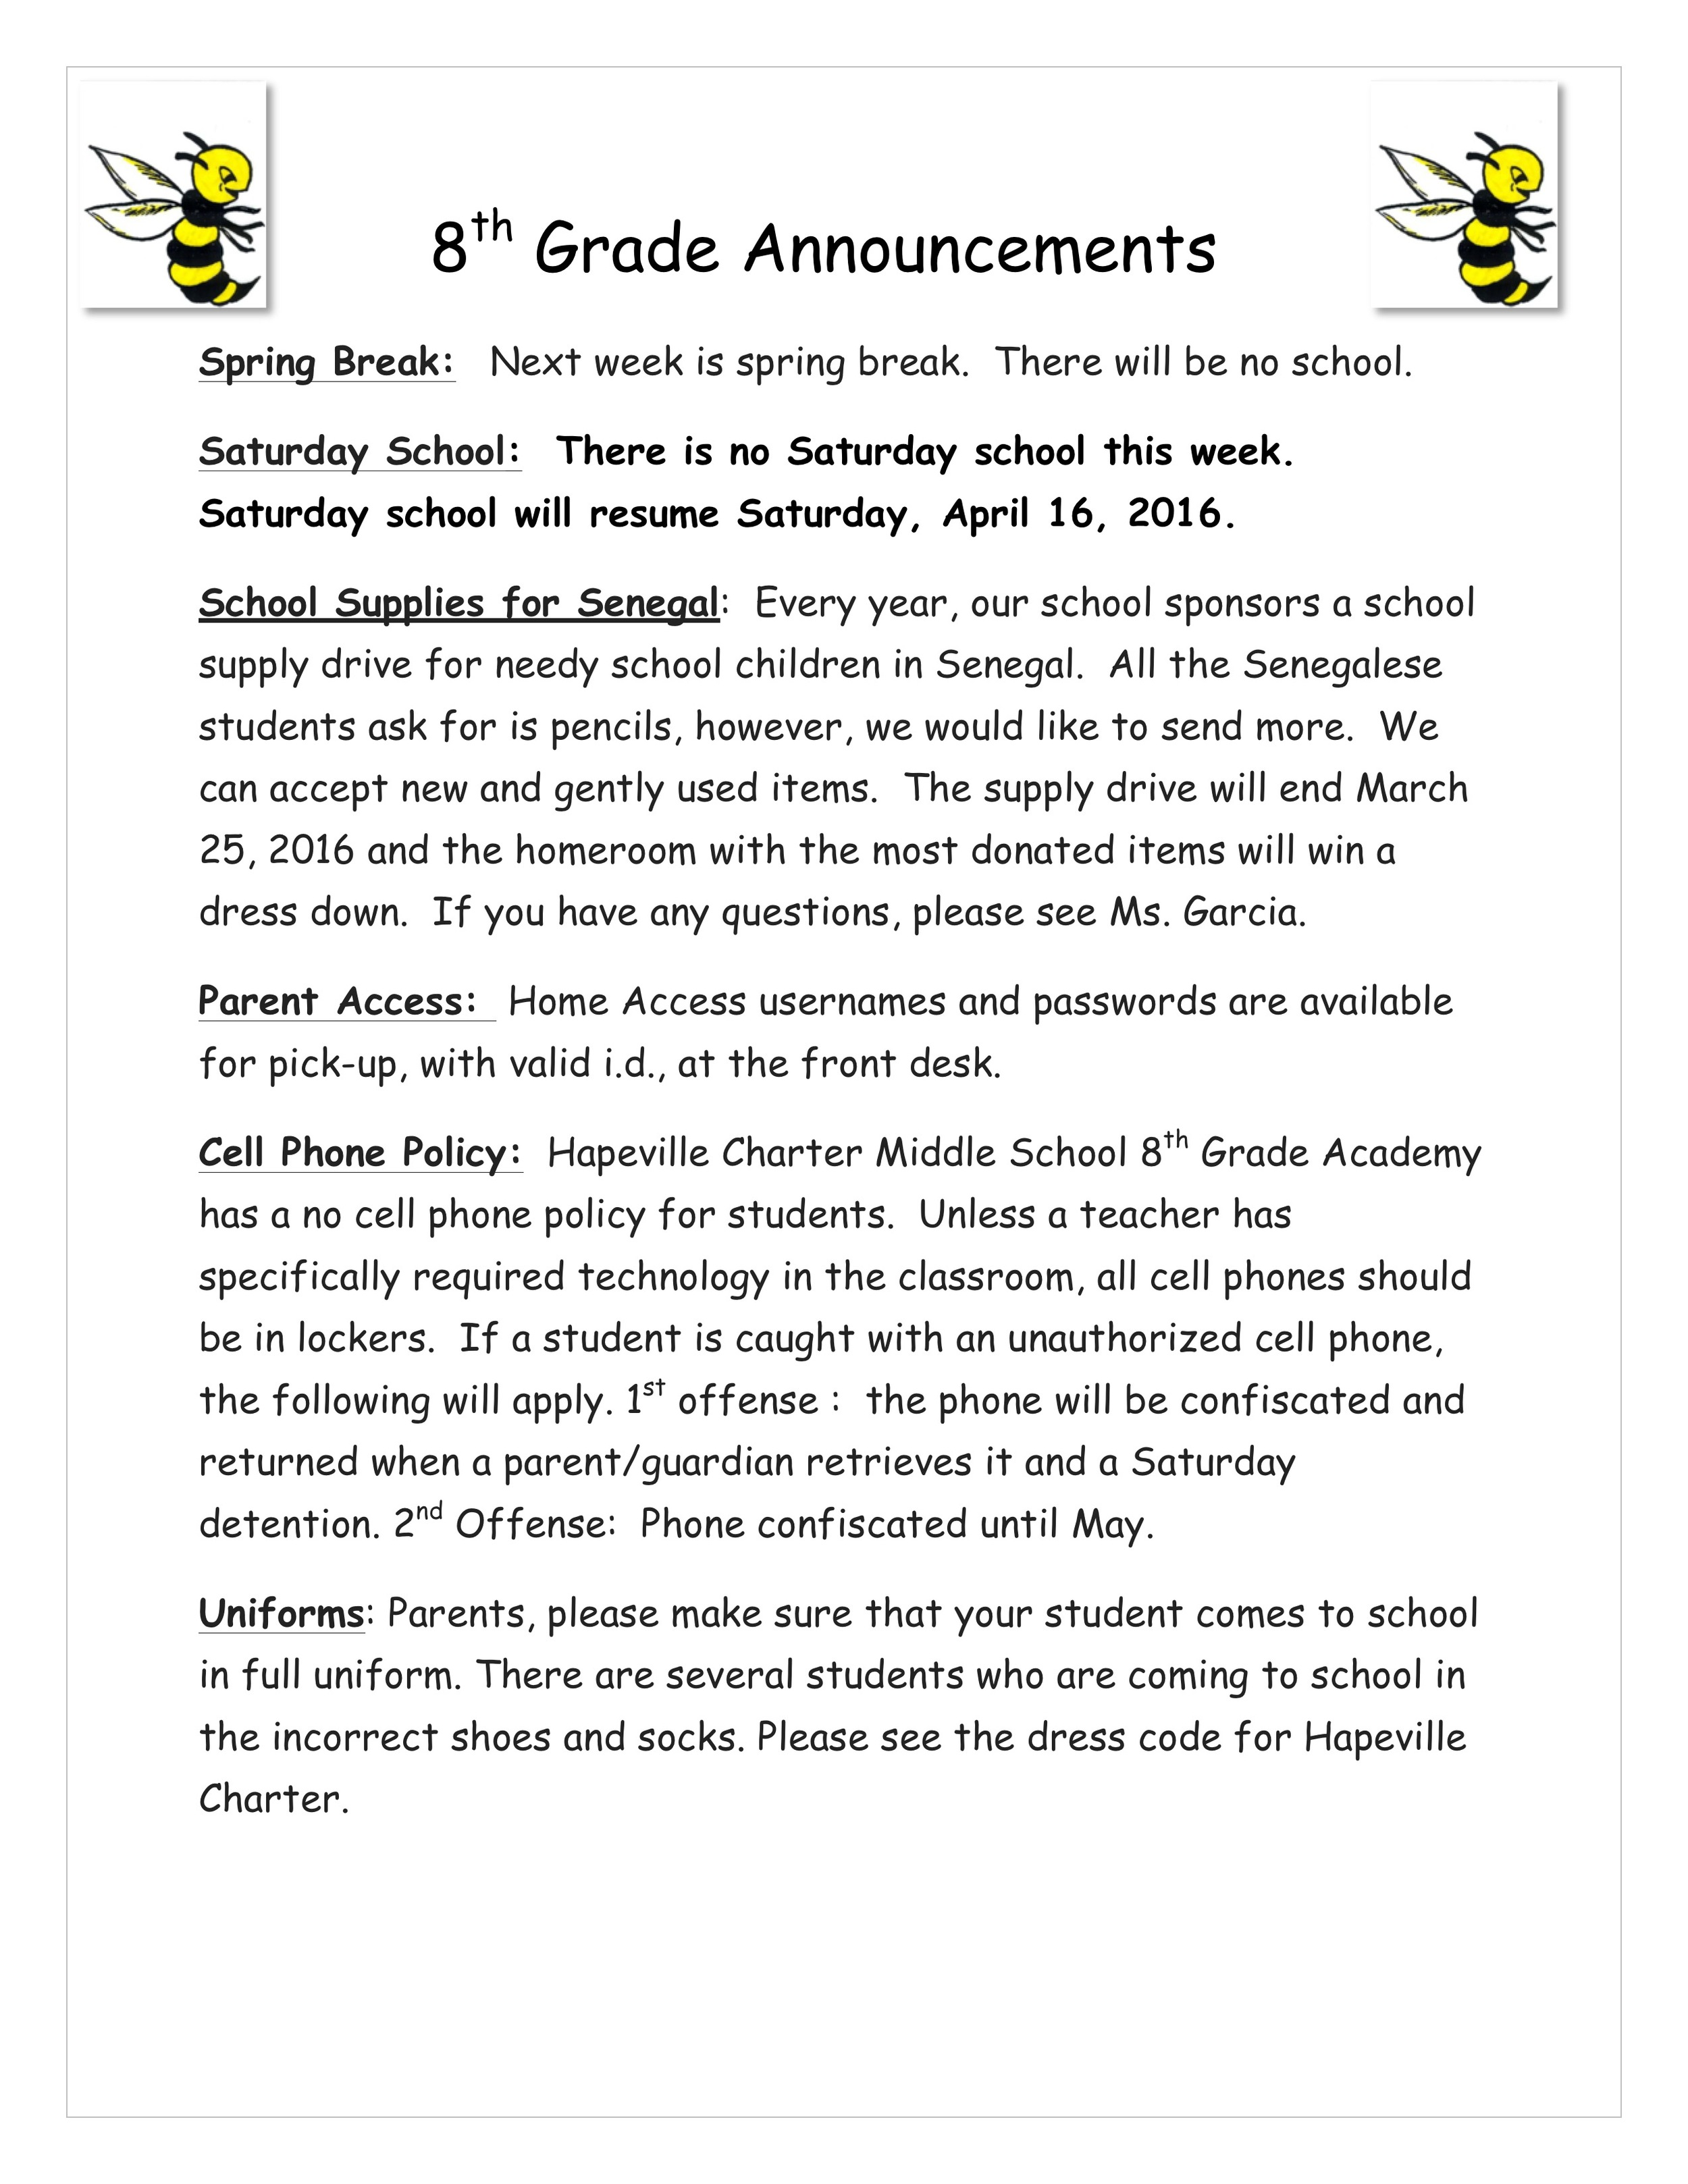 Newsletter Image8th grade March 29 2.jpeg